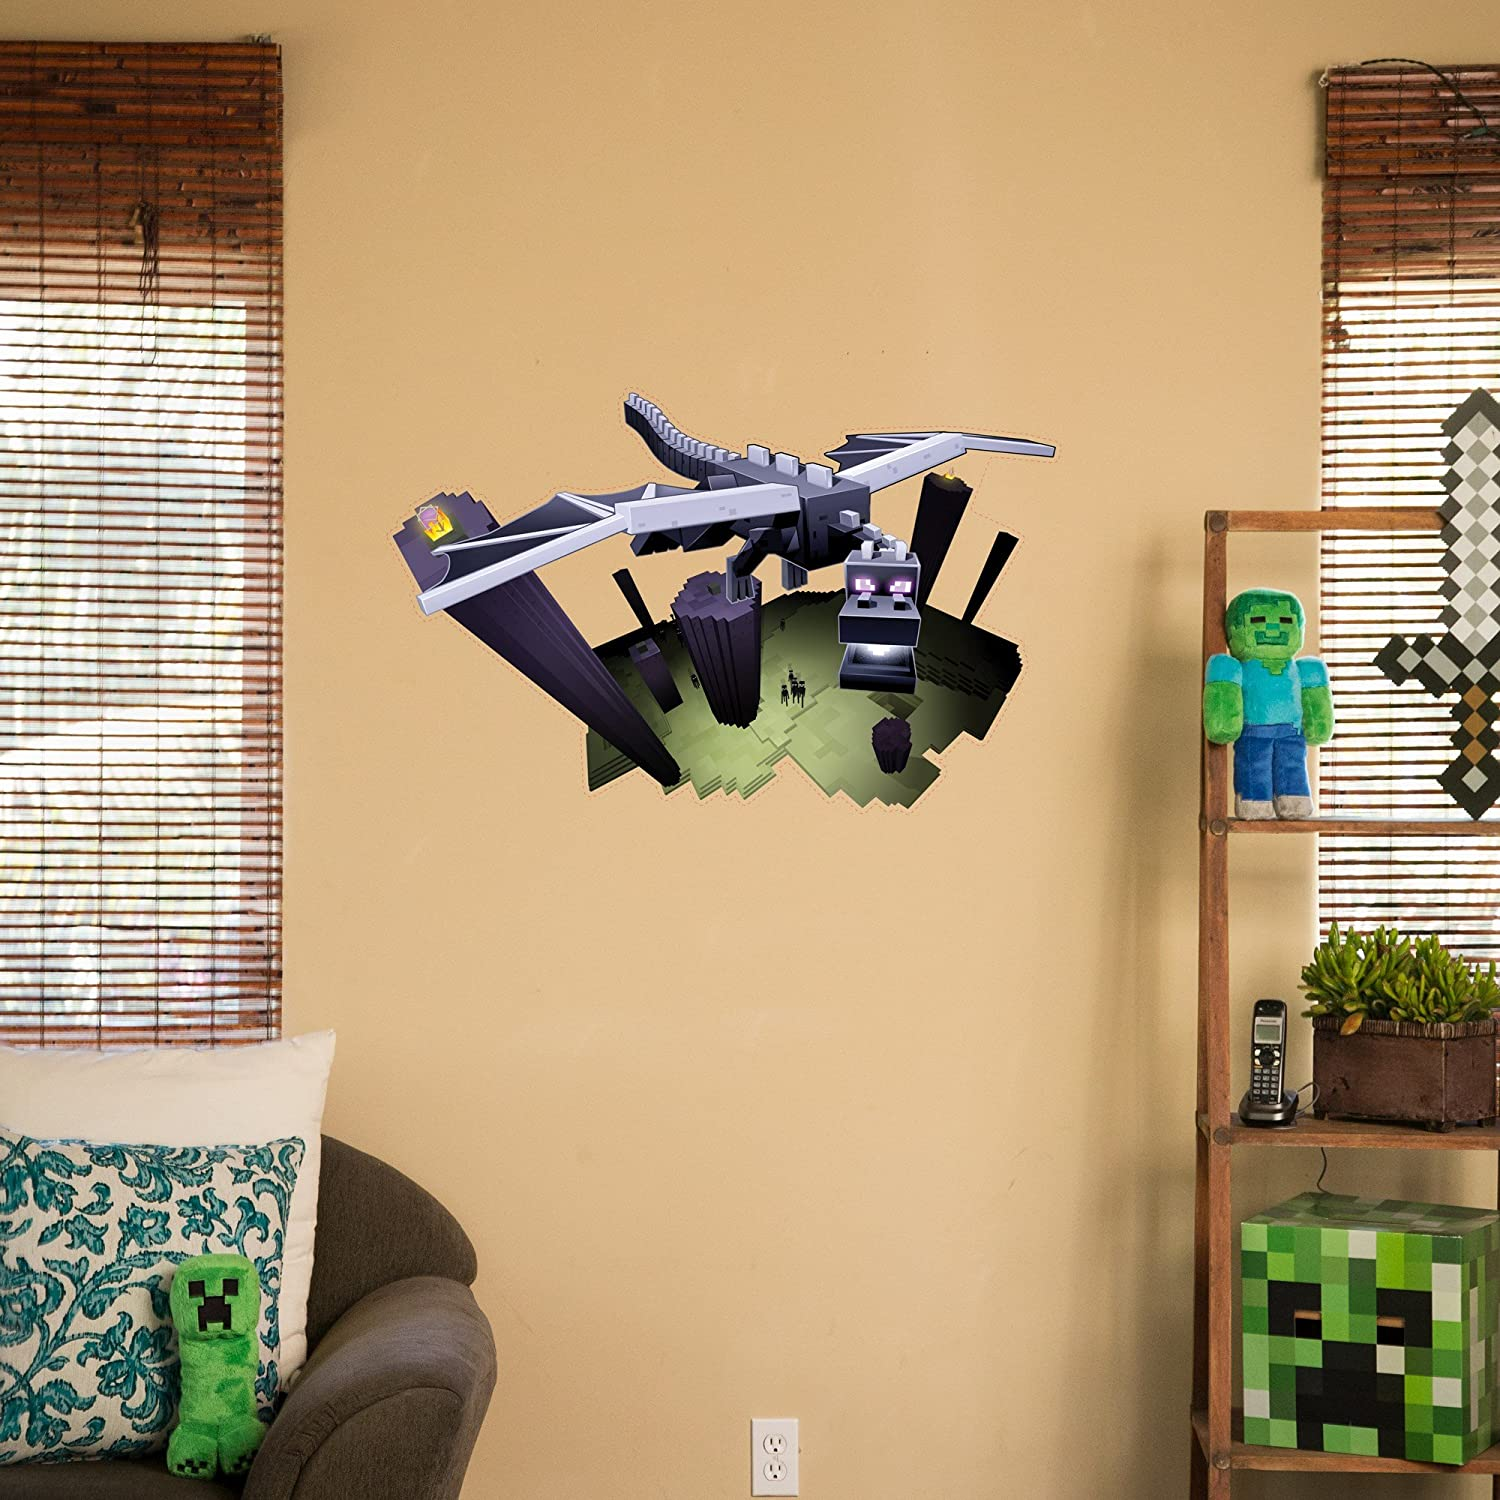 Amazon.com: JINX Minecraft \'The End\' Ender Dragon Removeable Wall ...